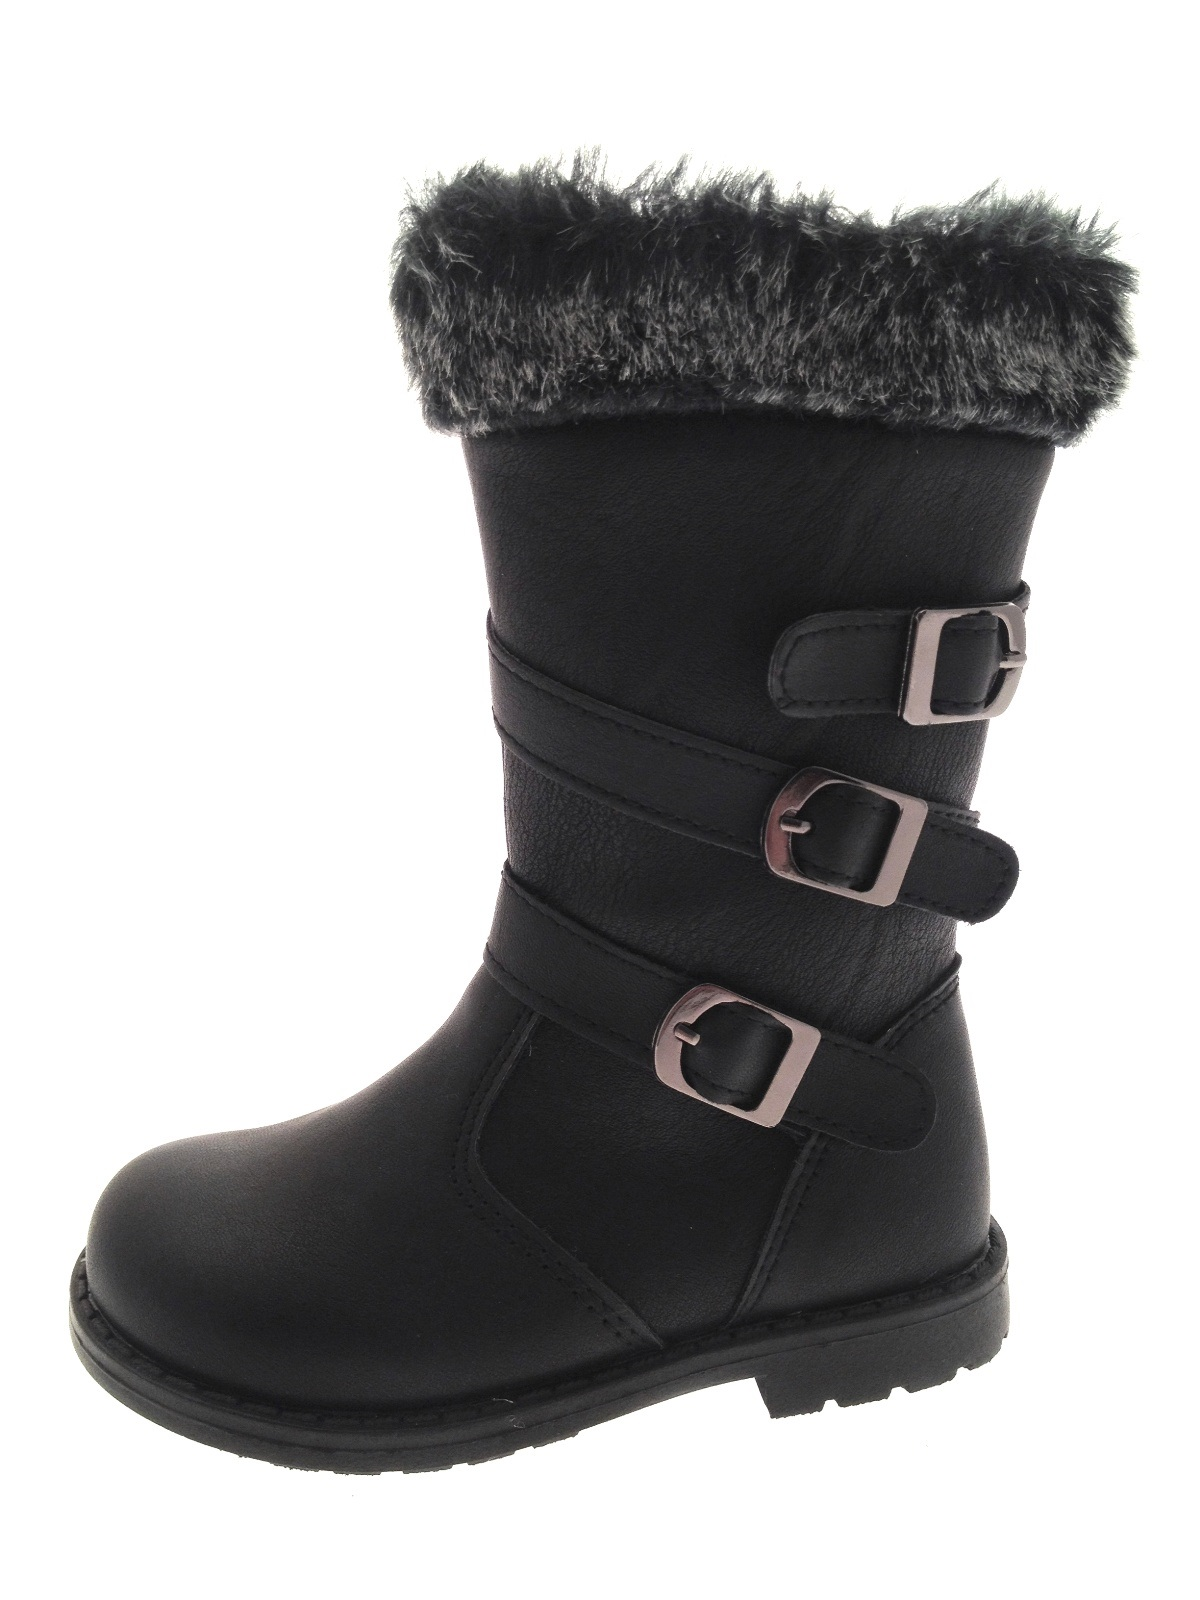 75a9000282df Chatterbox Girls Fur Cuff Ankle Strappy Biker Boots Childrens Shoes ...